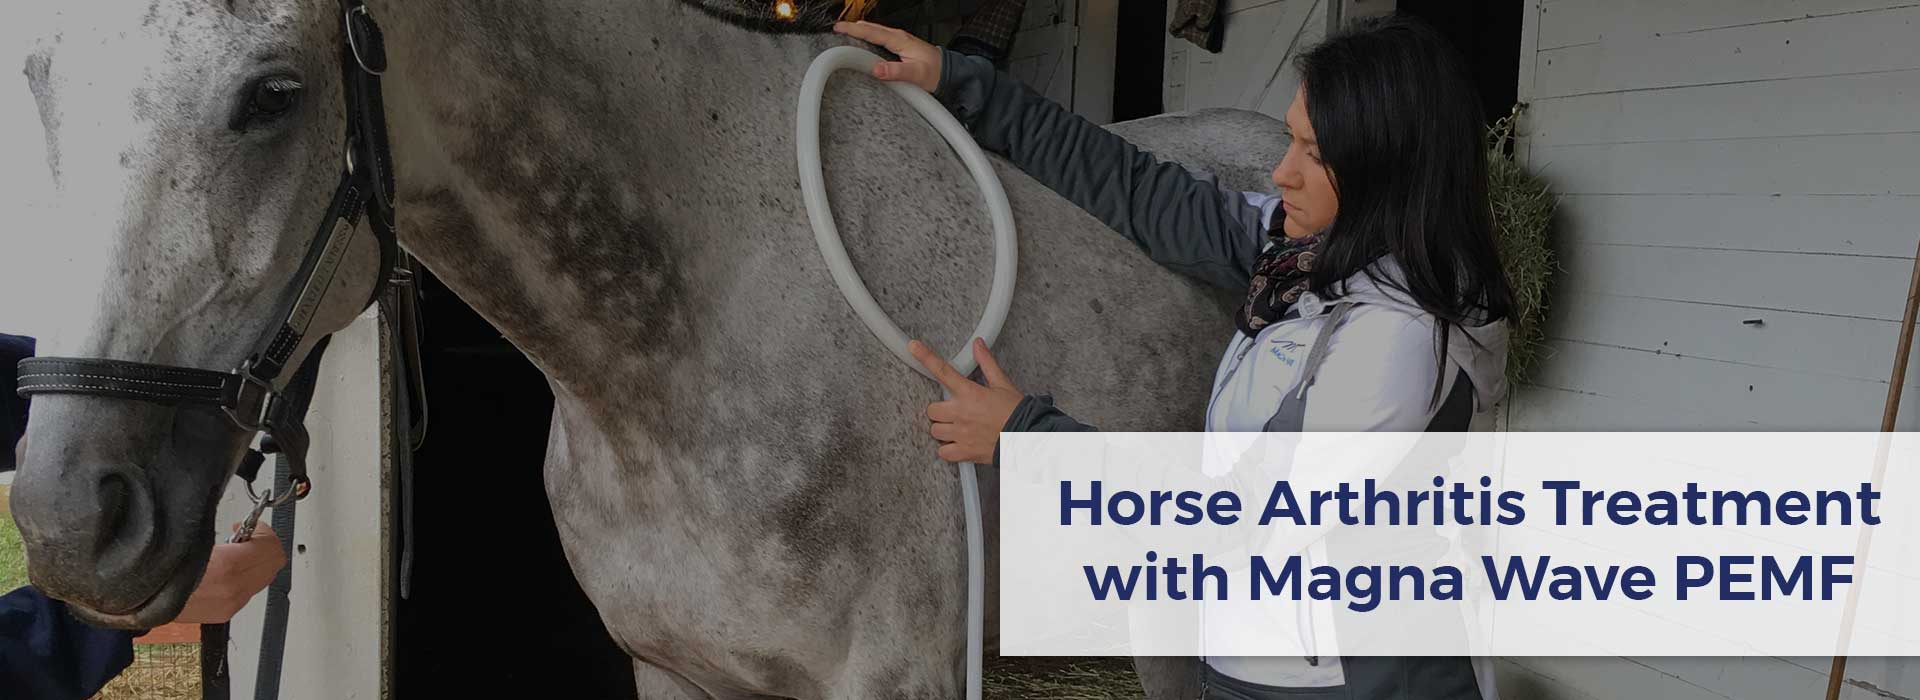 Horse Arthritis Treatment with Magna Wave PEMF